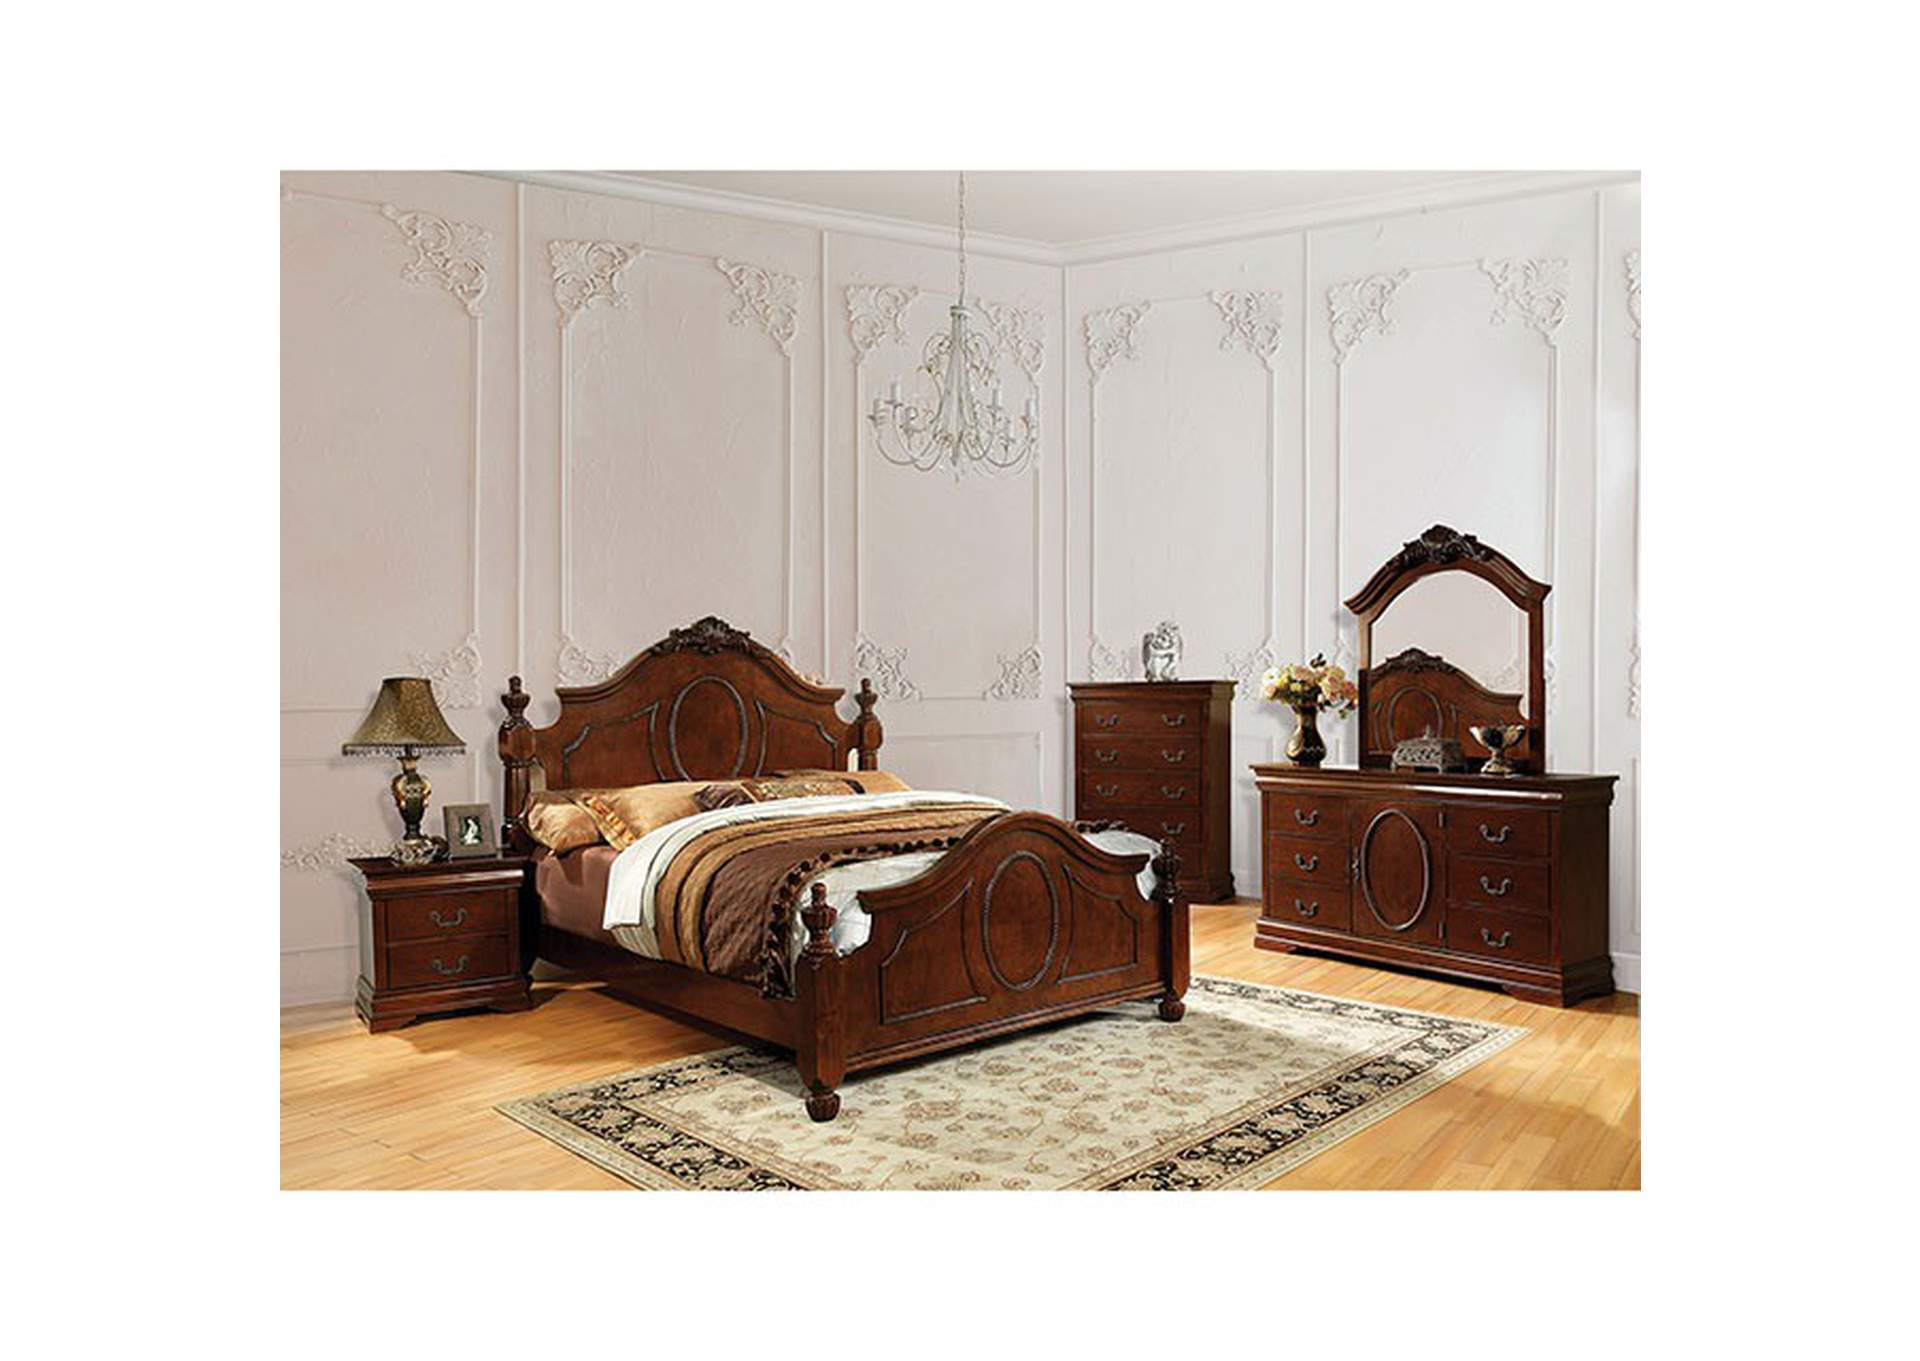 Velda II Queen Poster Bed,Furniture of America